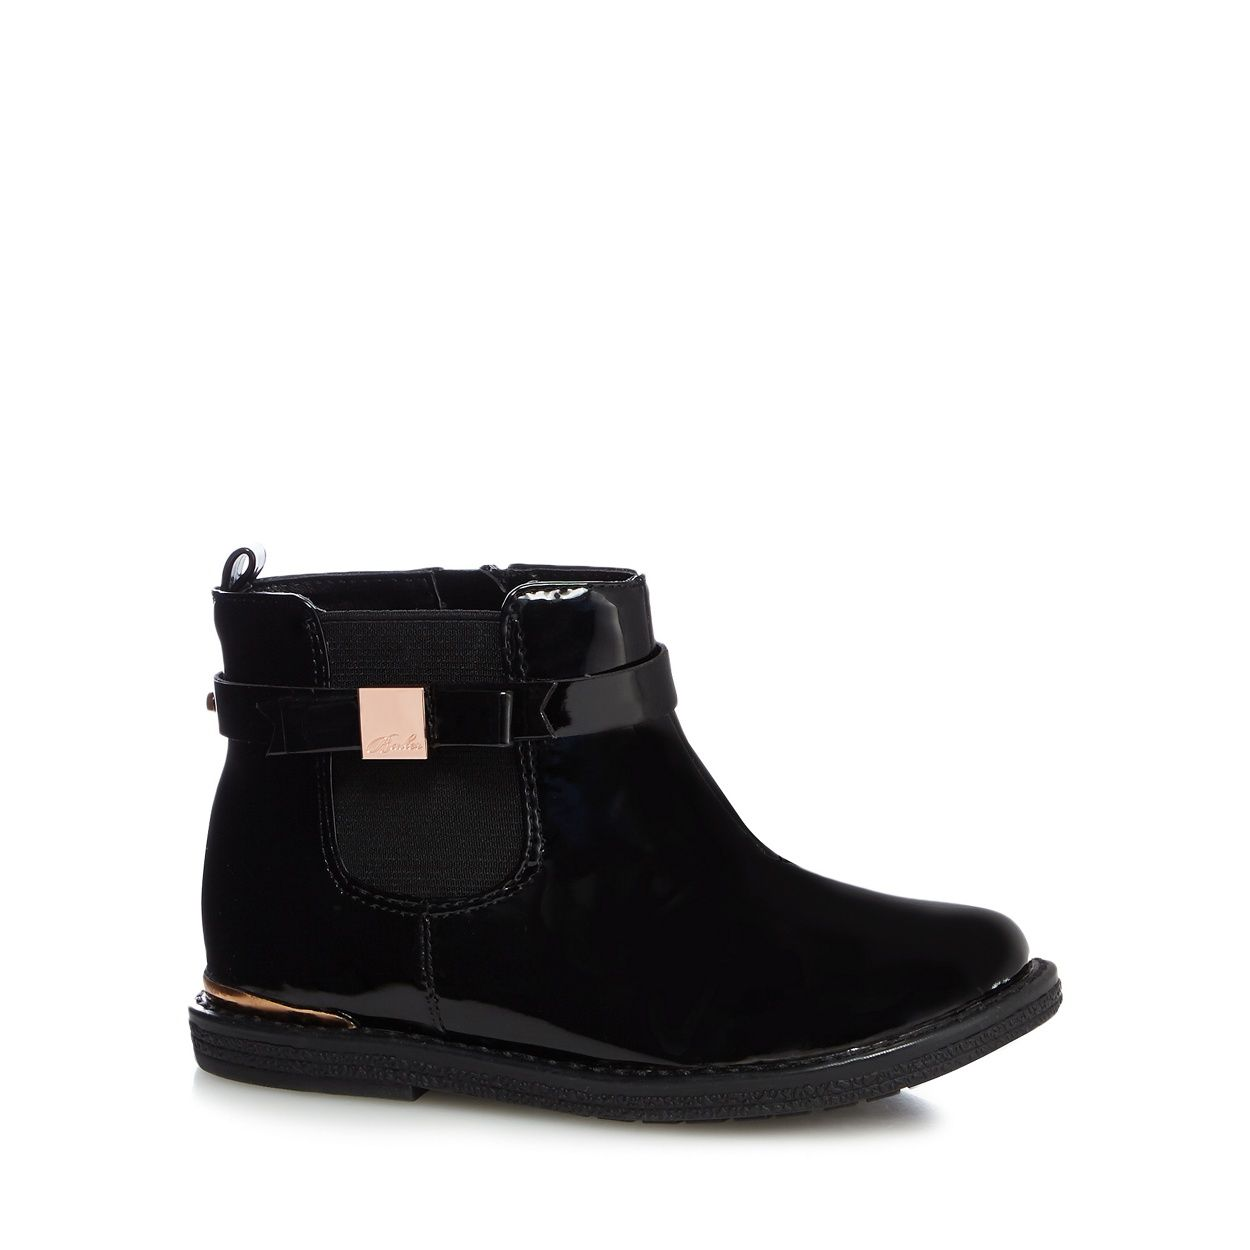 black patent ankle boots from Baker